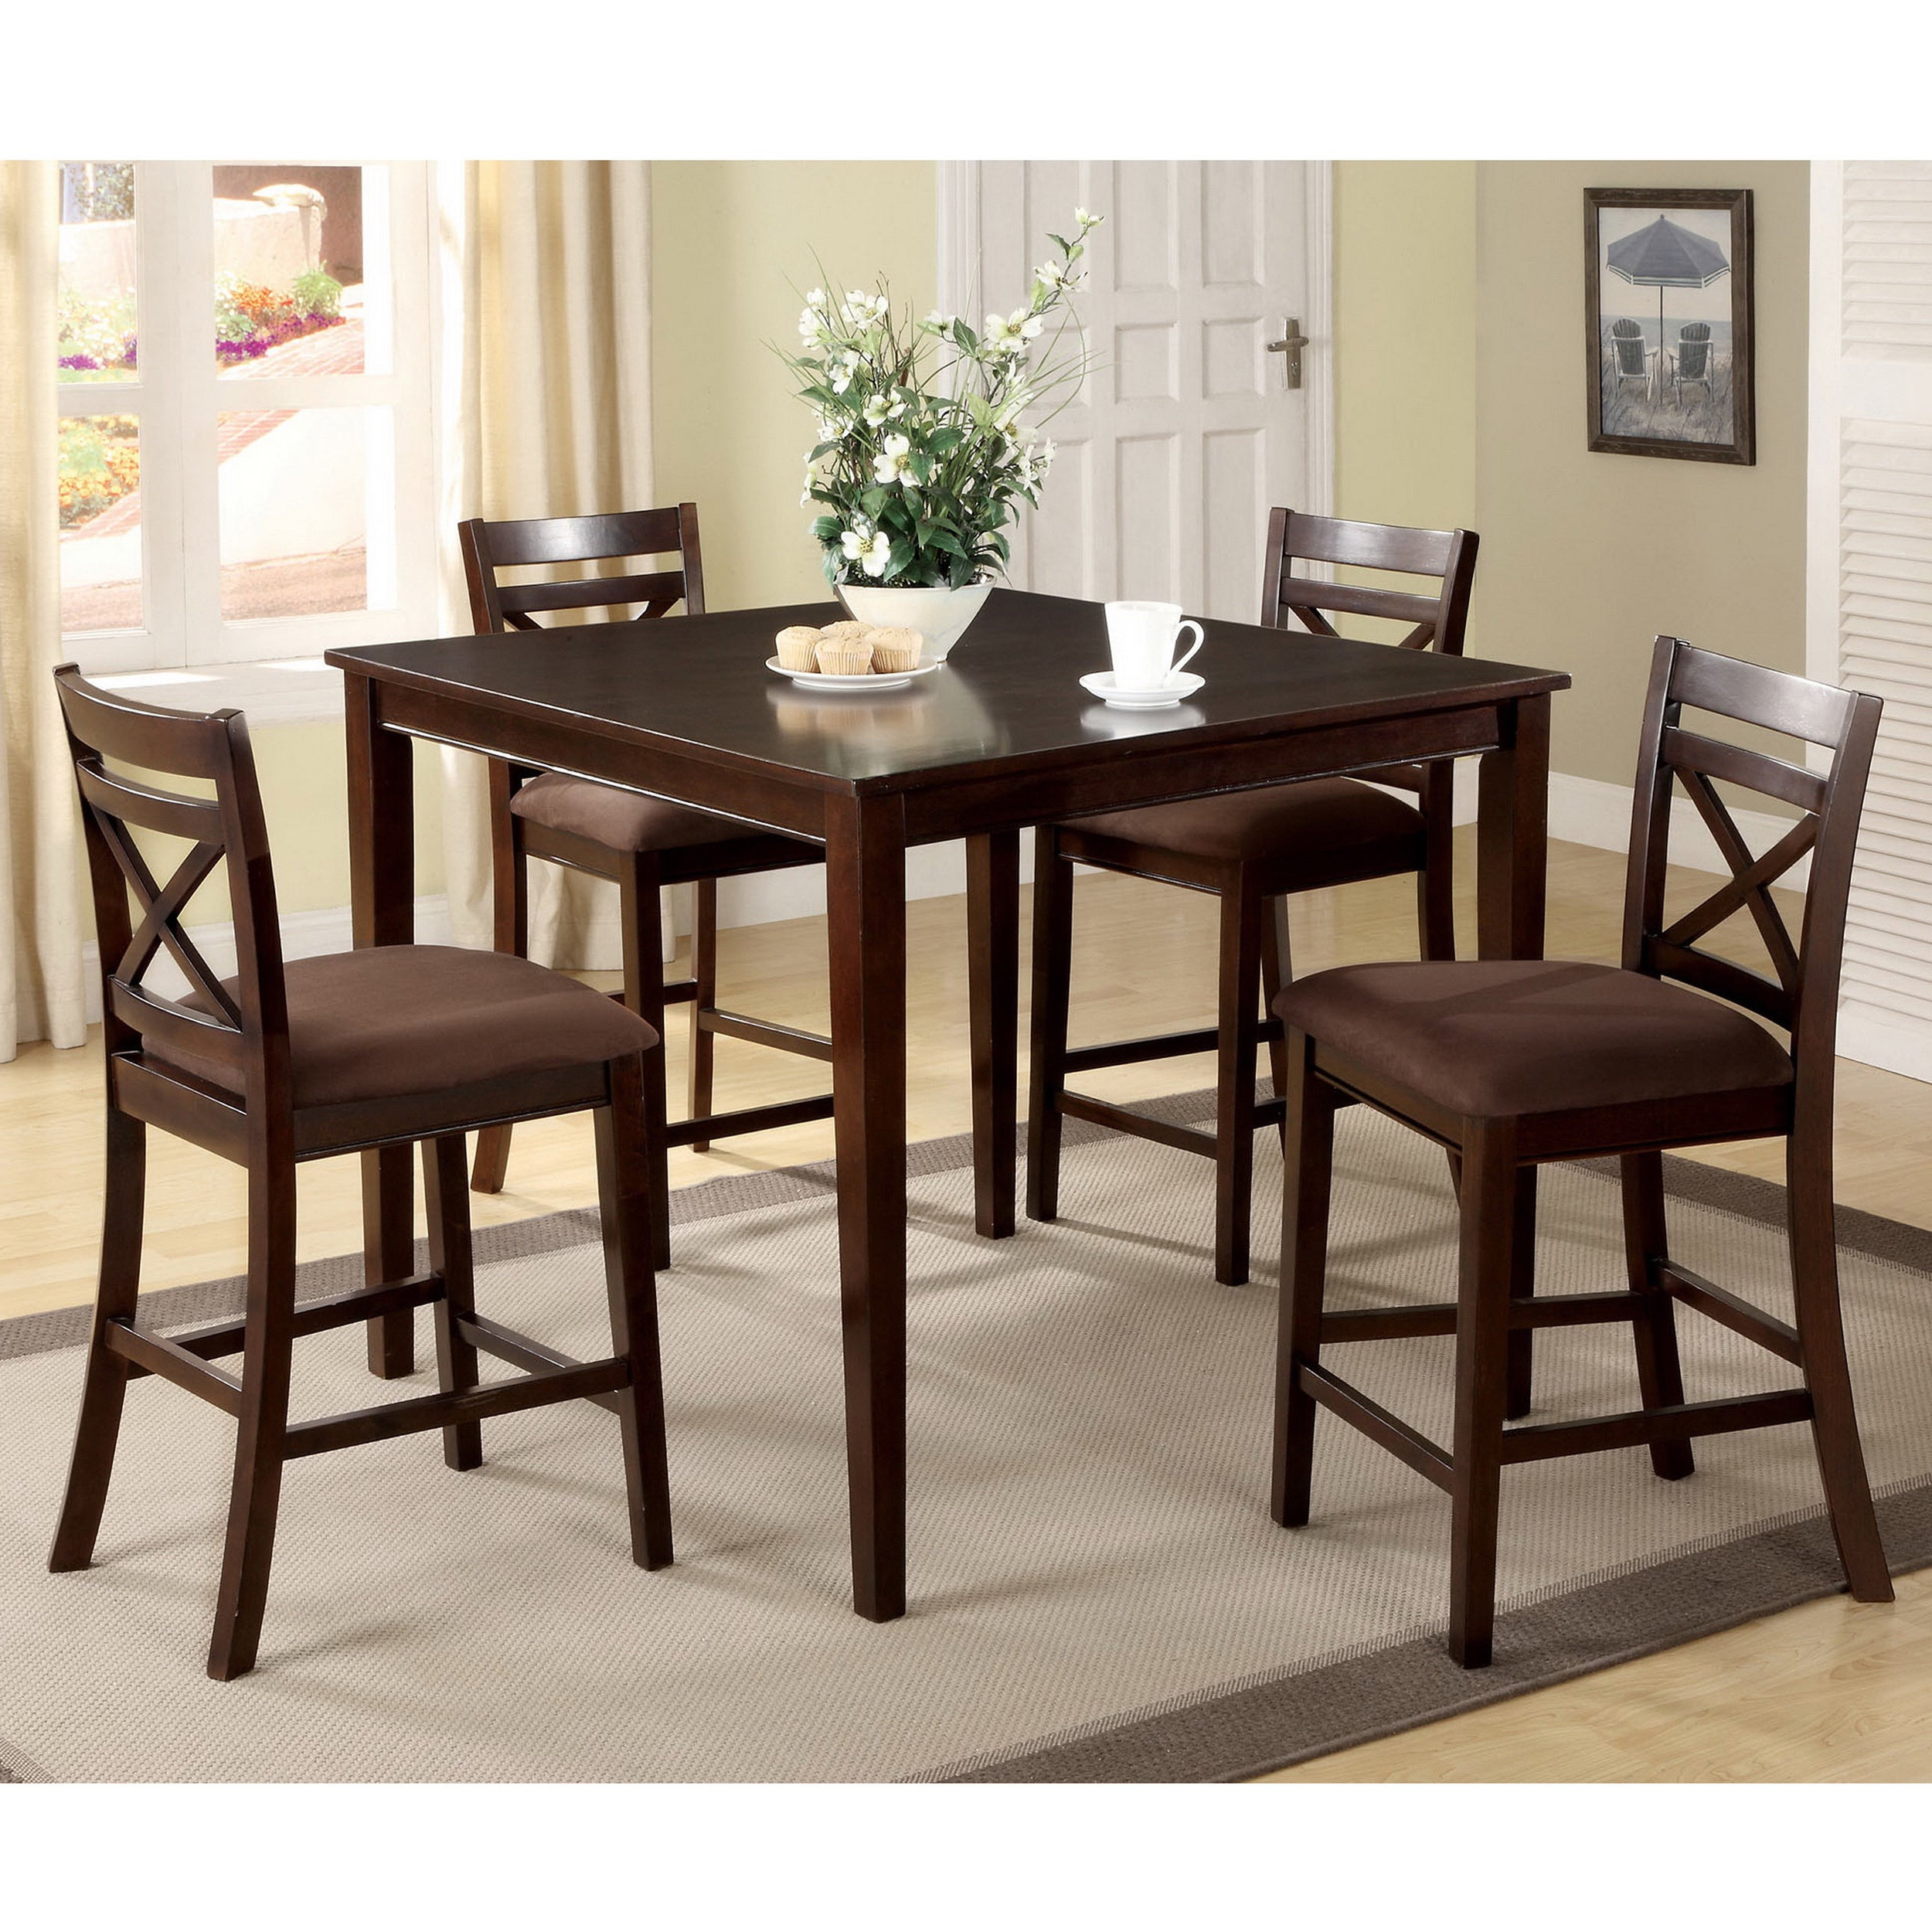 Shop Copper Grove Catlerock 5 Piece Counter Height Dining Set – On With Latest Bettencourt 3 Piece Counter Height Dining Sets (View 14 of 25)